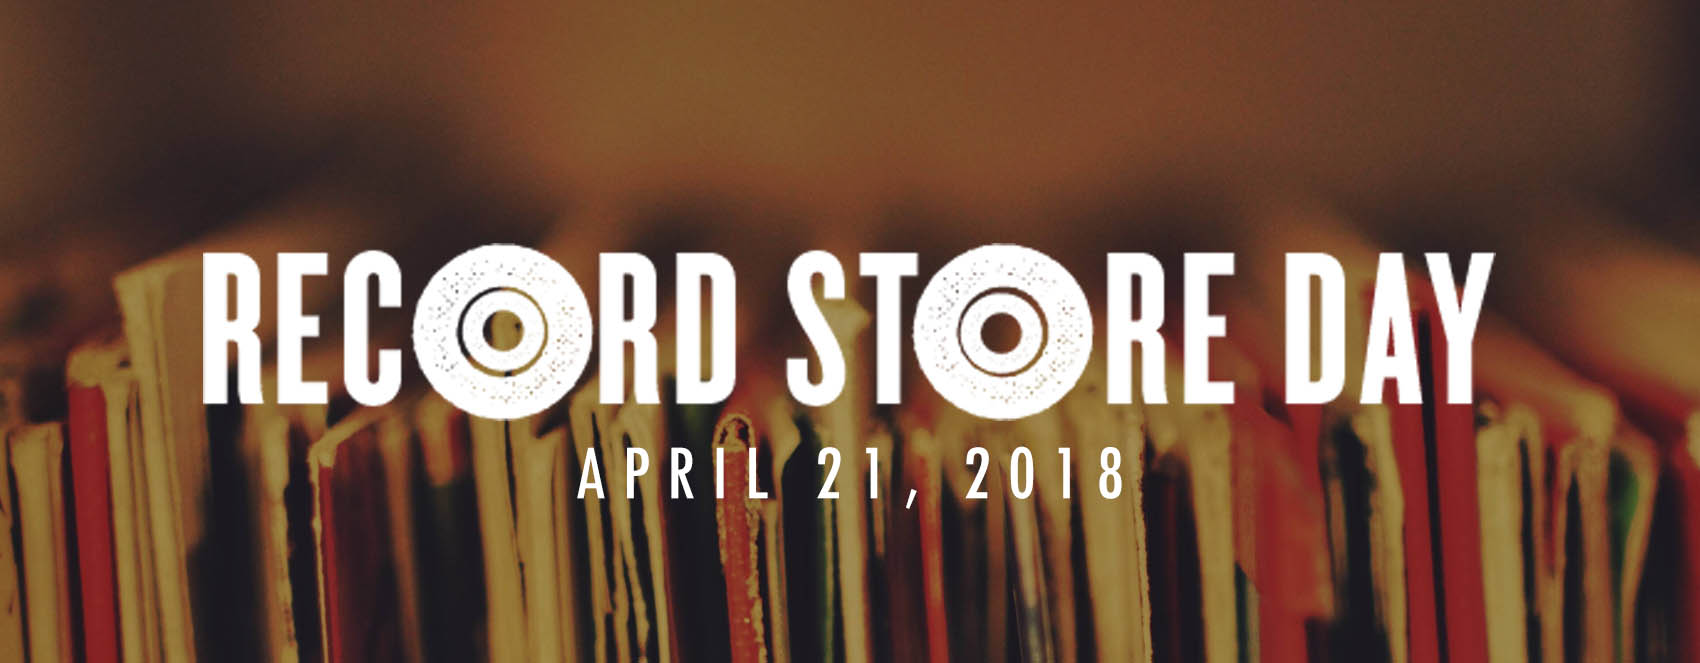 Record Store Day - April 21 2018